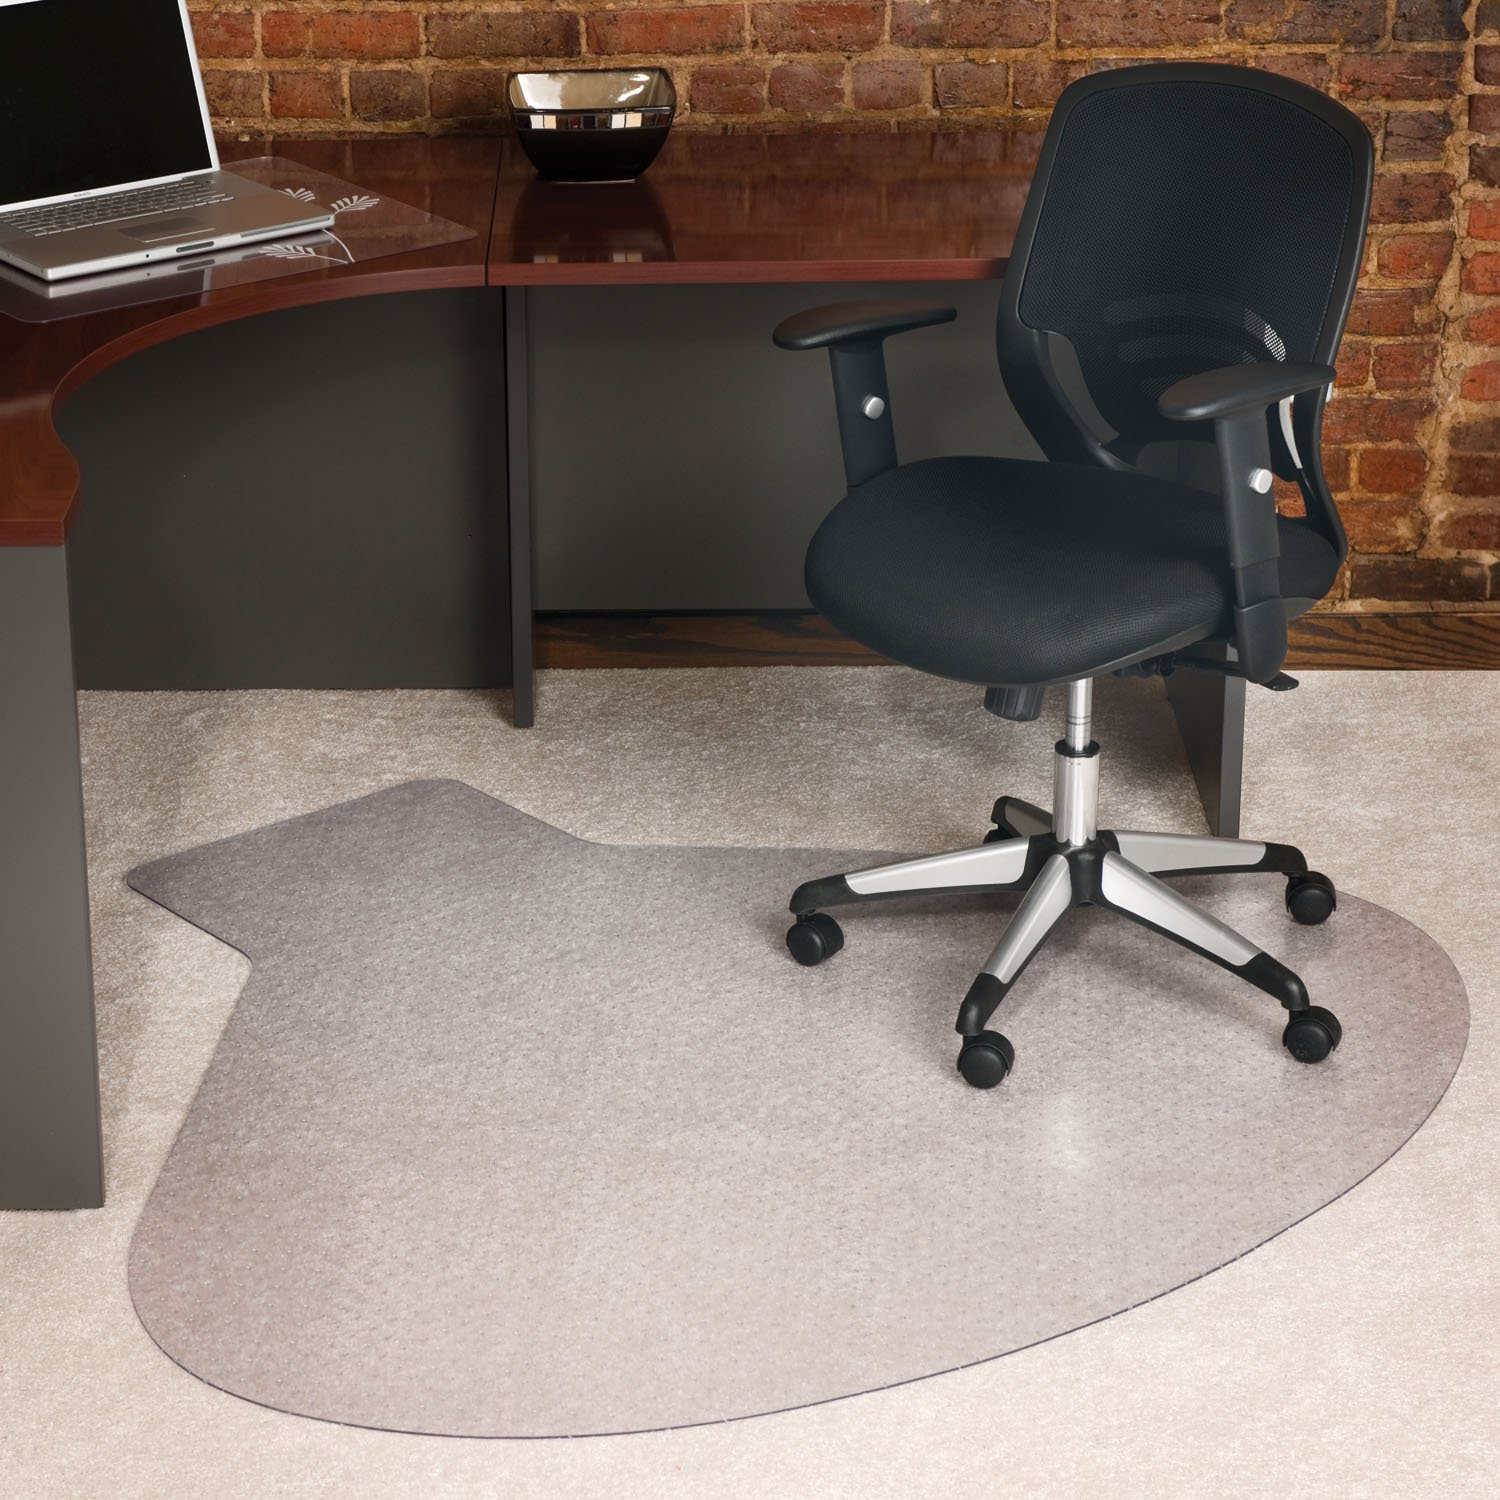 office mats floor for matscom chair black pad carpet l